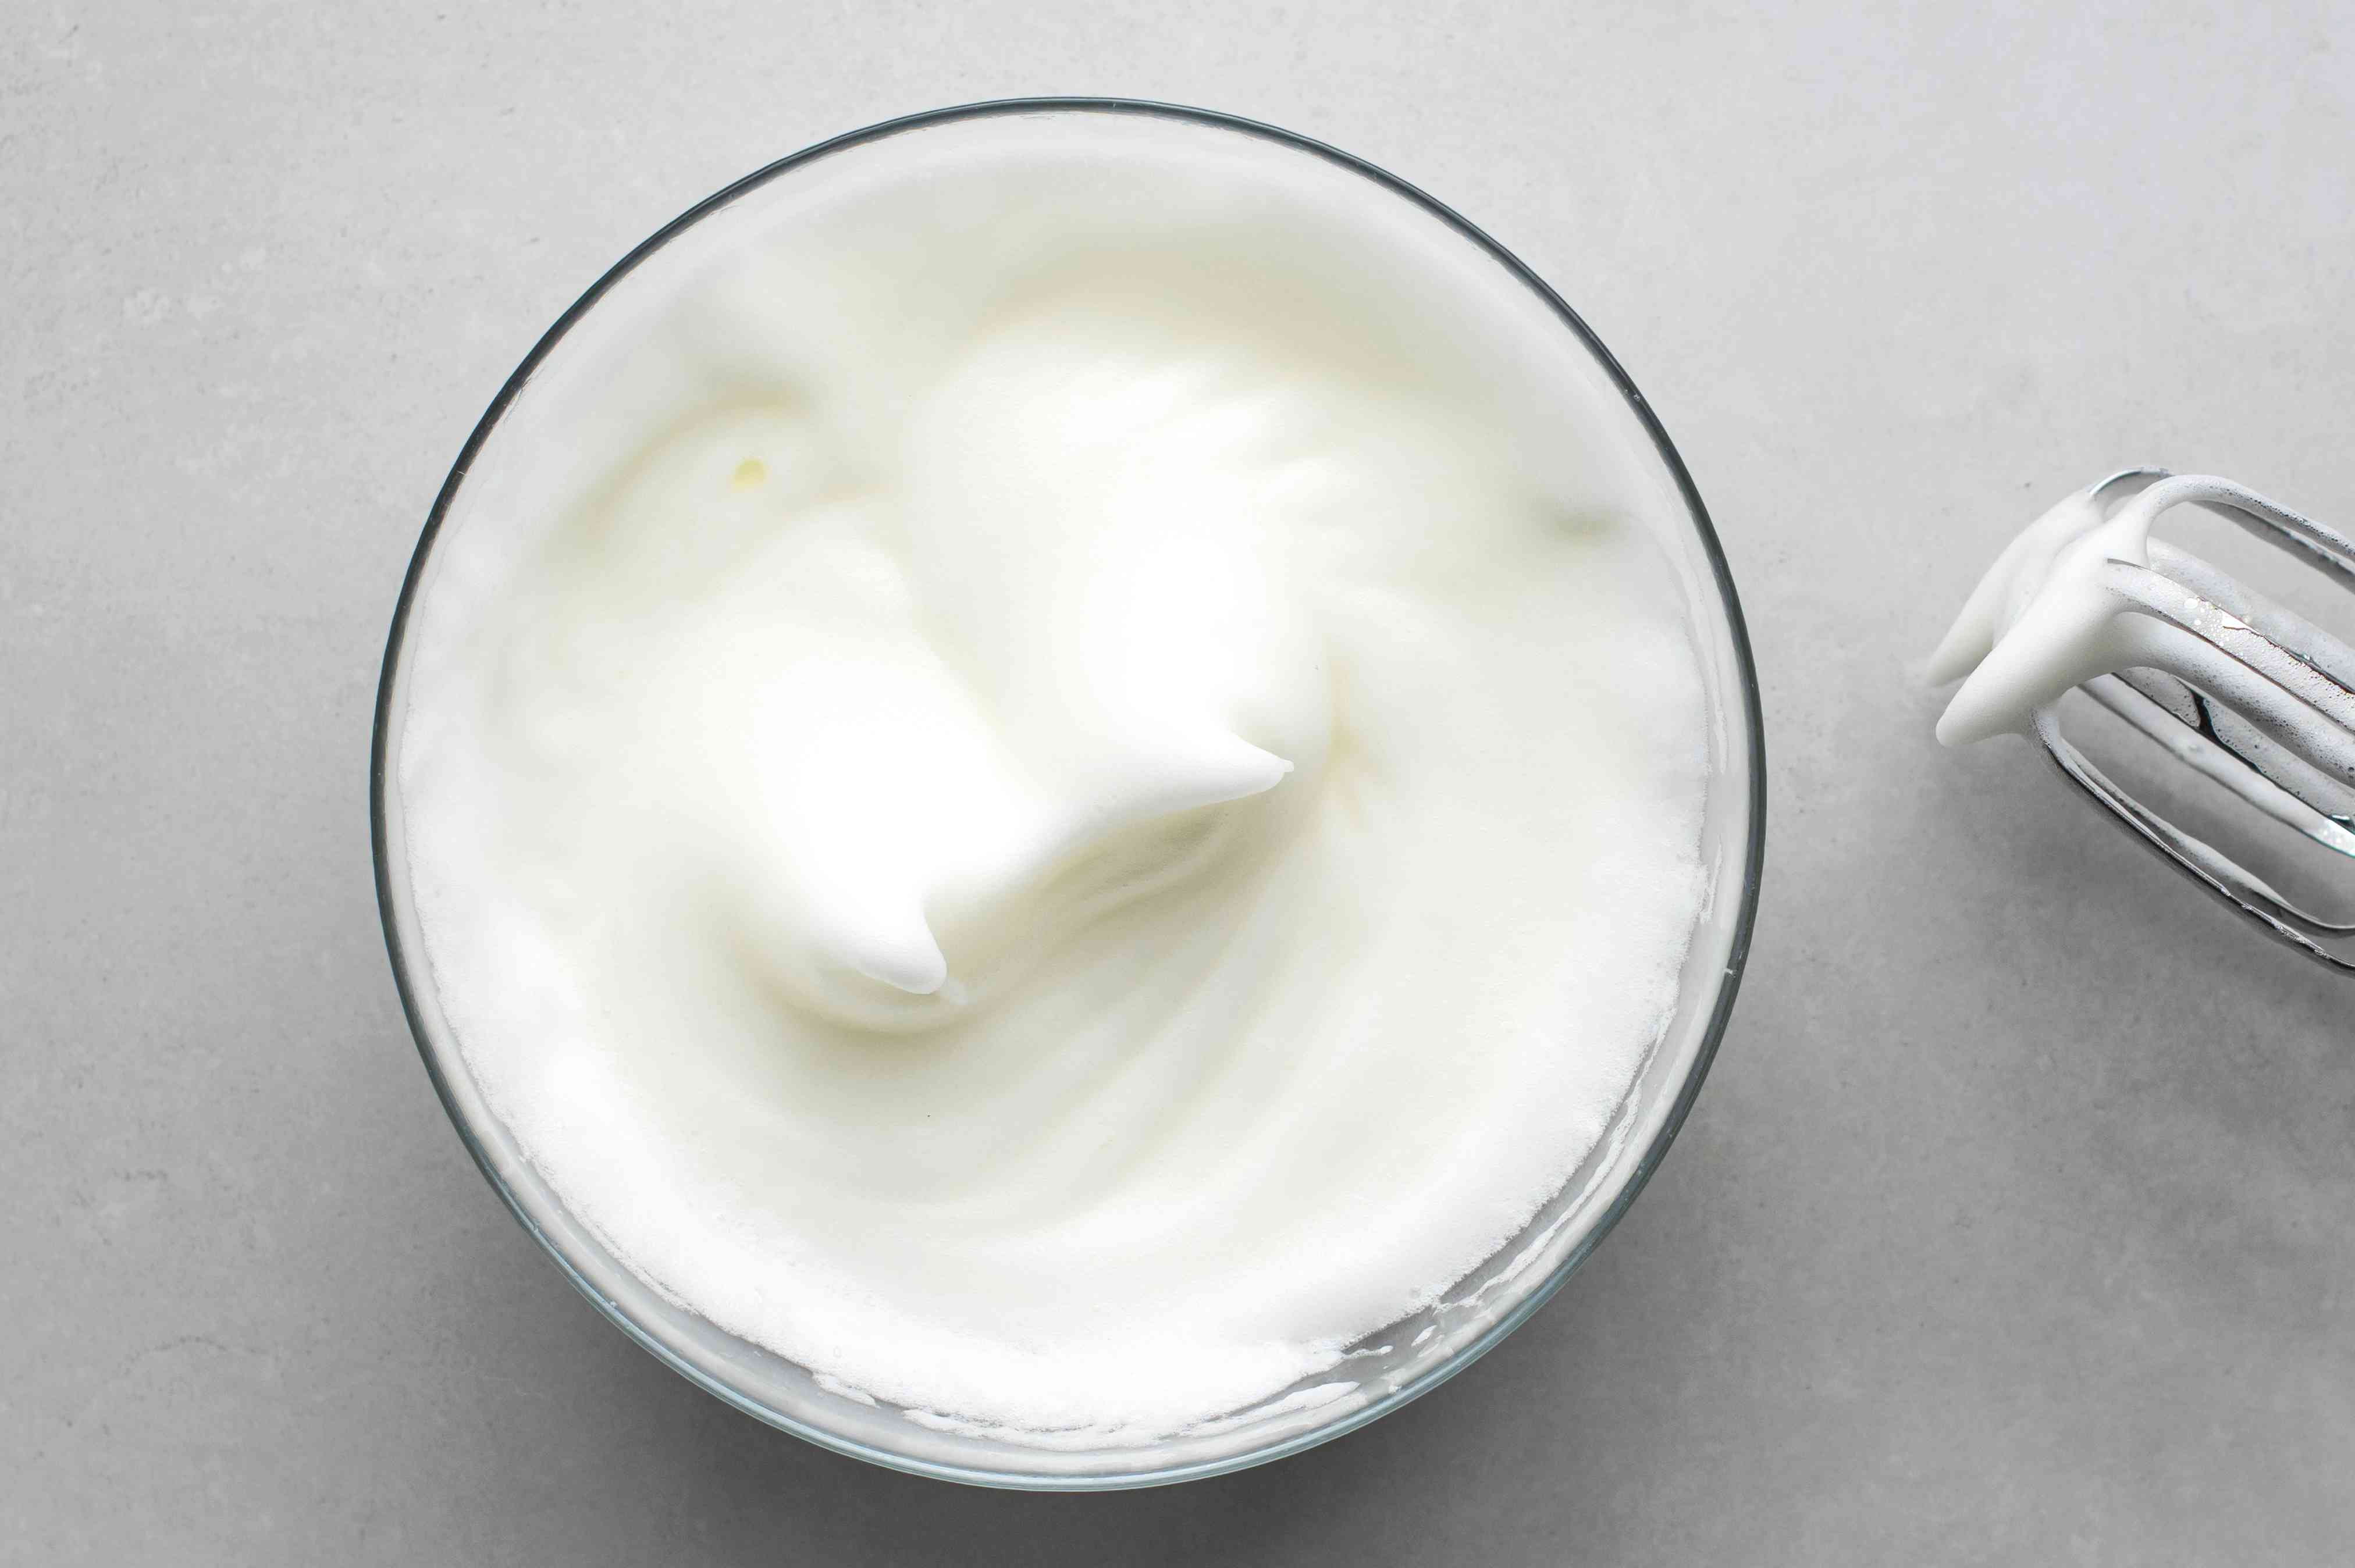 beat egg whites with a hand mixer